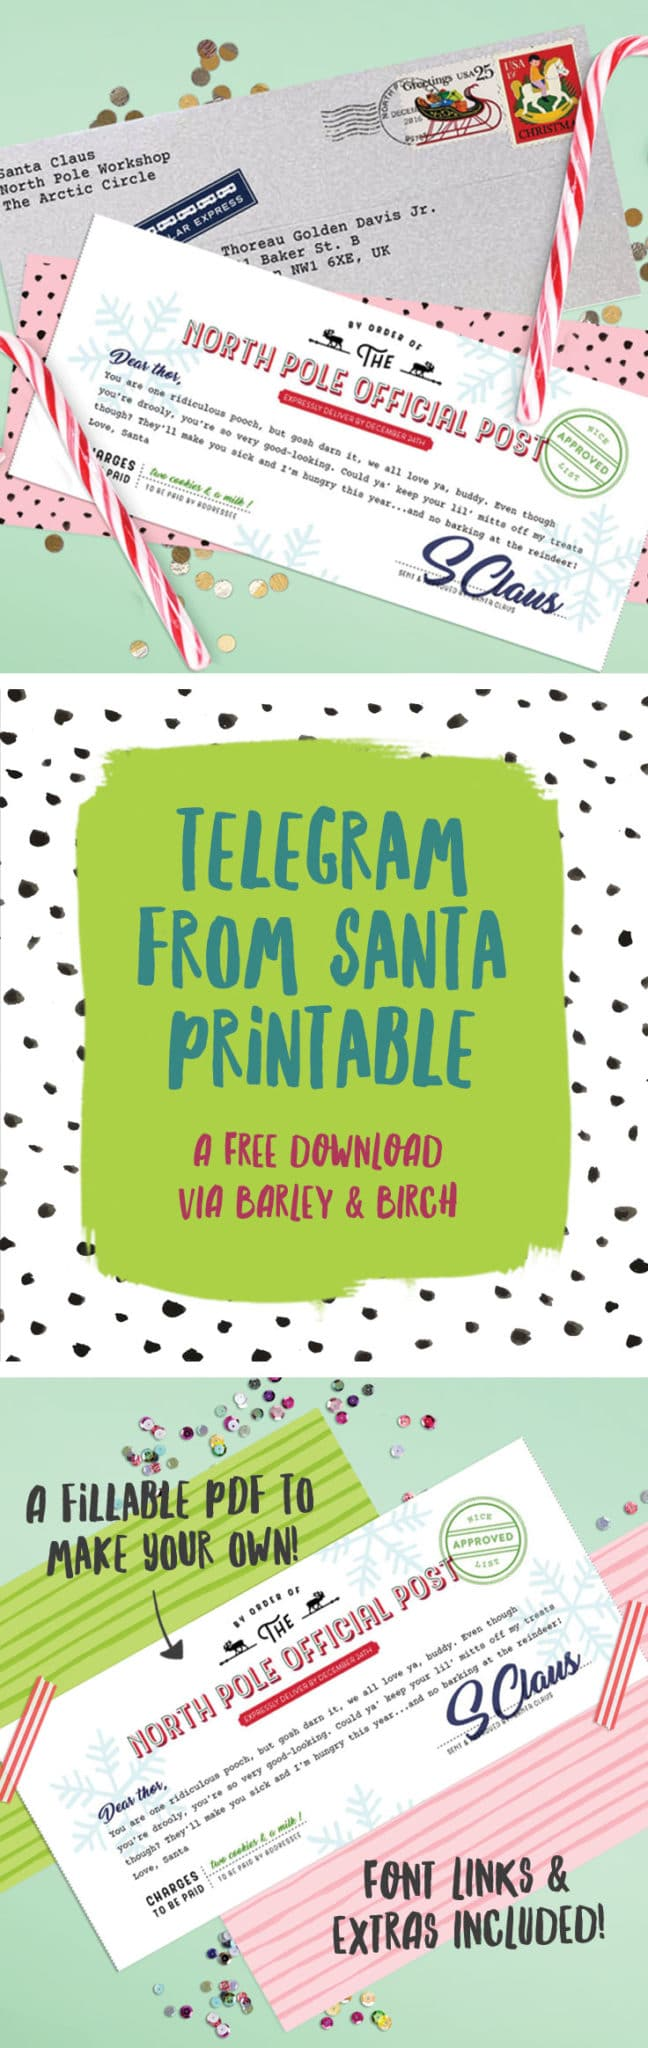 Surprise the favorite little in your life with a telegram from Santa - a free printable via barley & birch